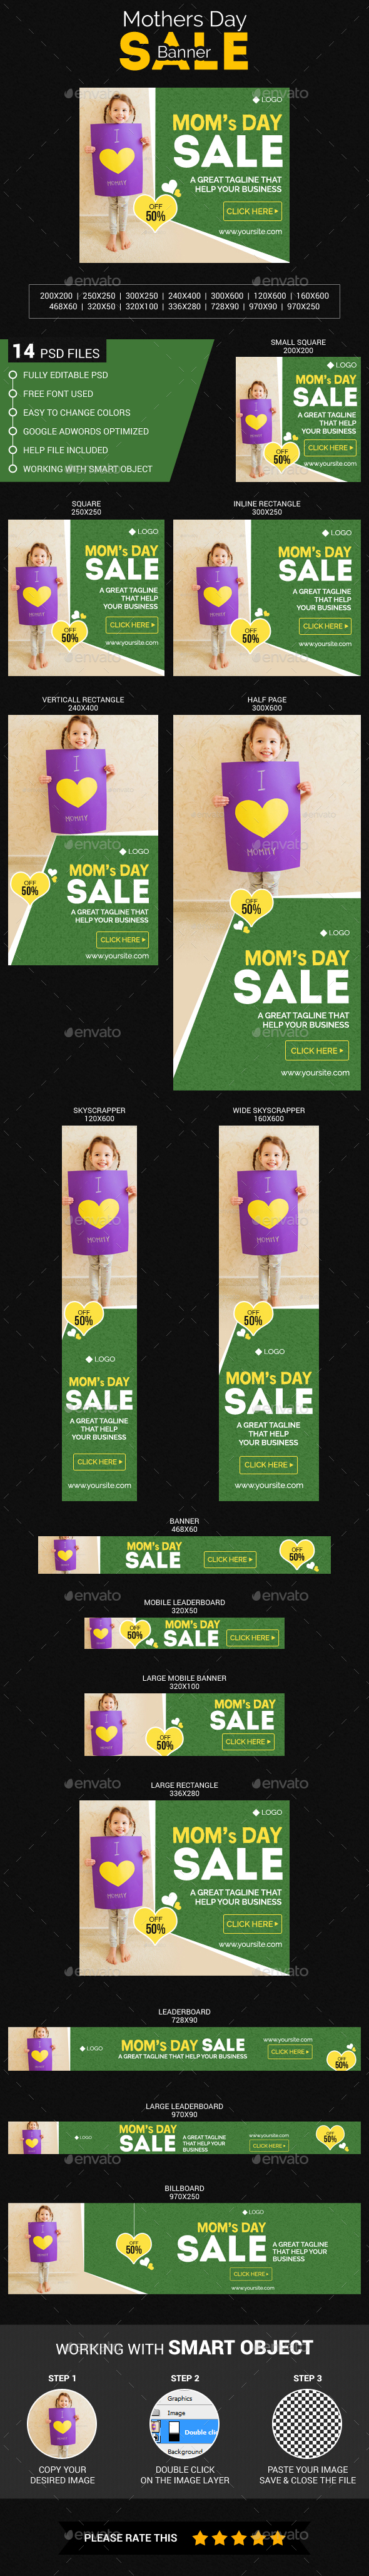 Moms Day Sale - Banners & Ads Web Elements